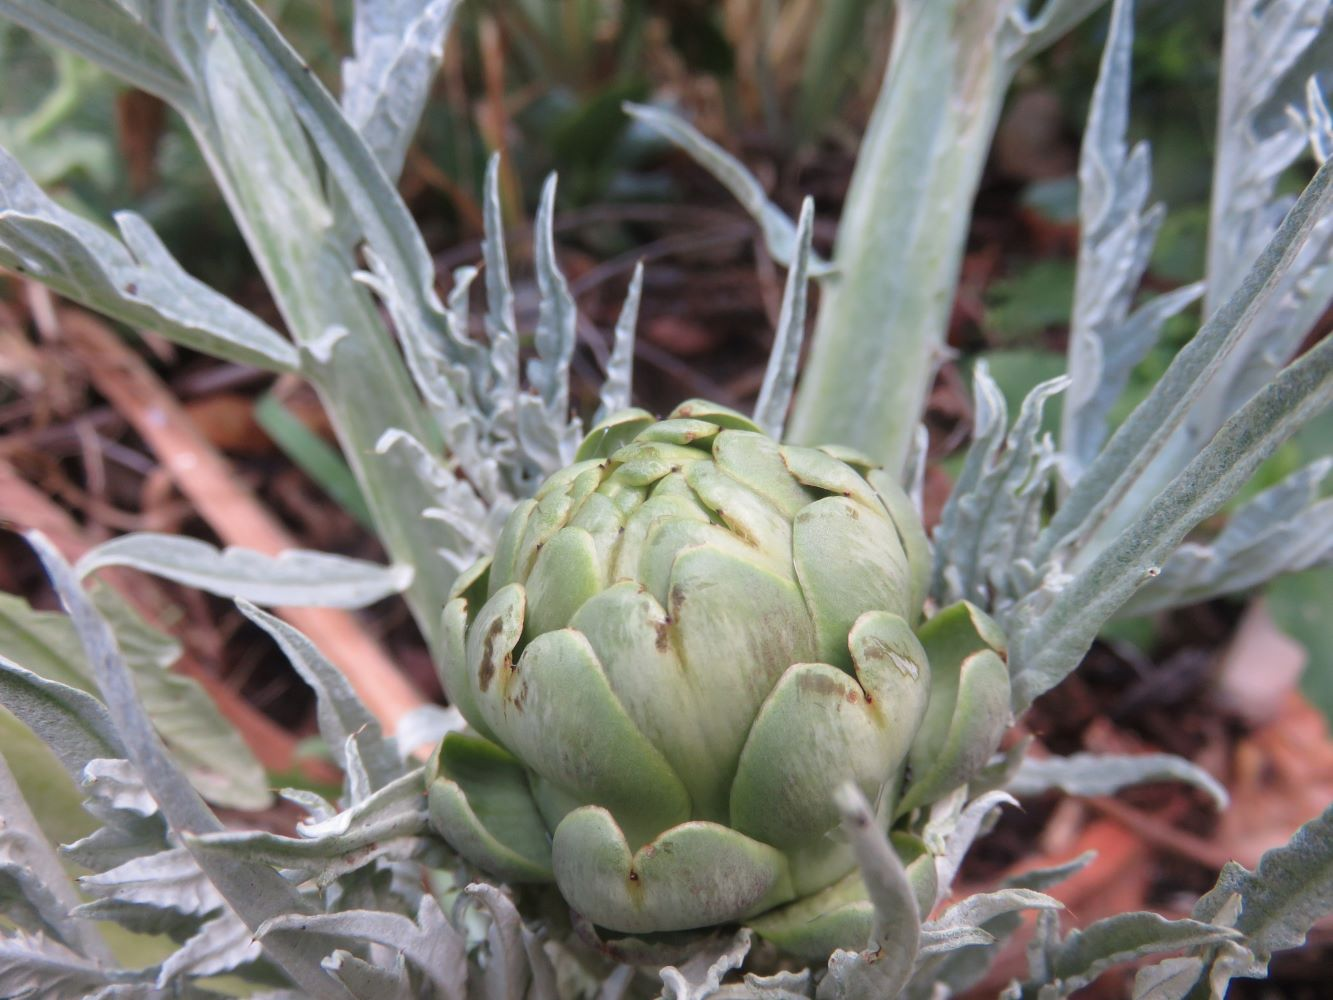 globe artichoke leaves are beautiful when healthy